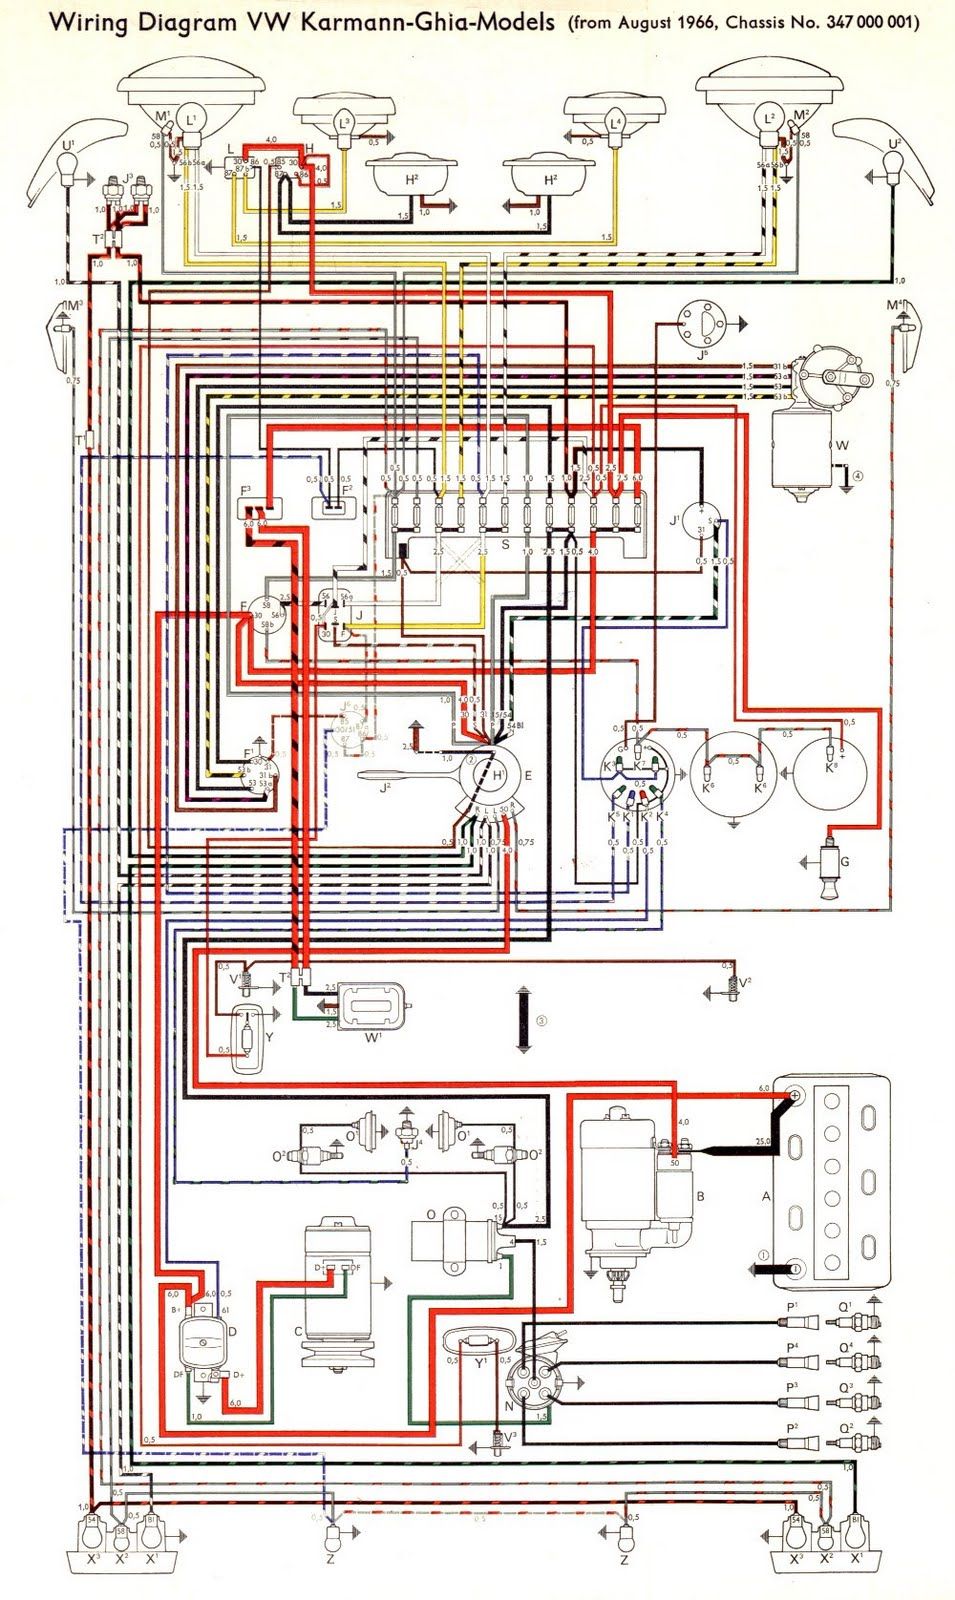 Free Auto    Wiring       Diagram     1966 VW KarmannGhia Models